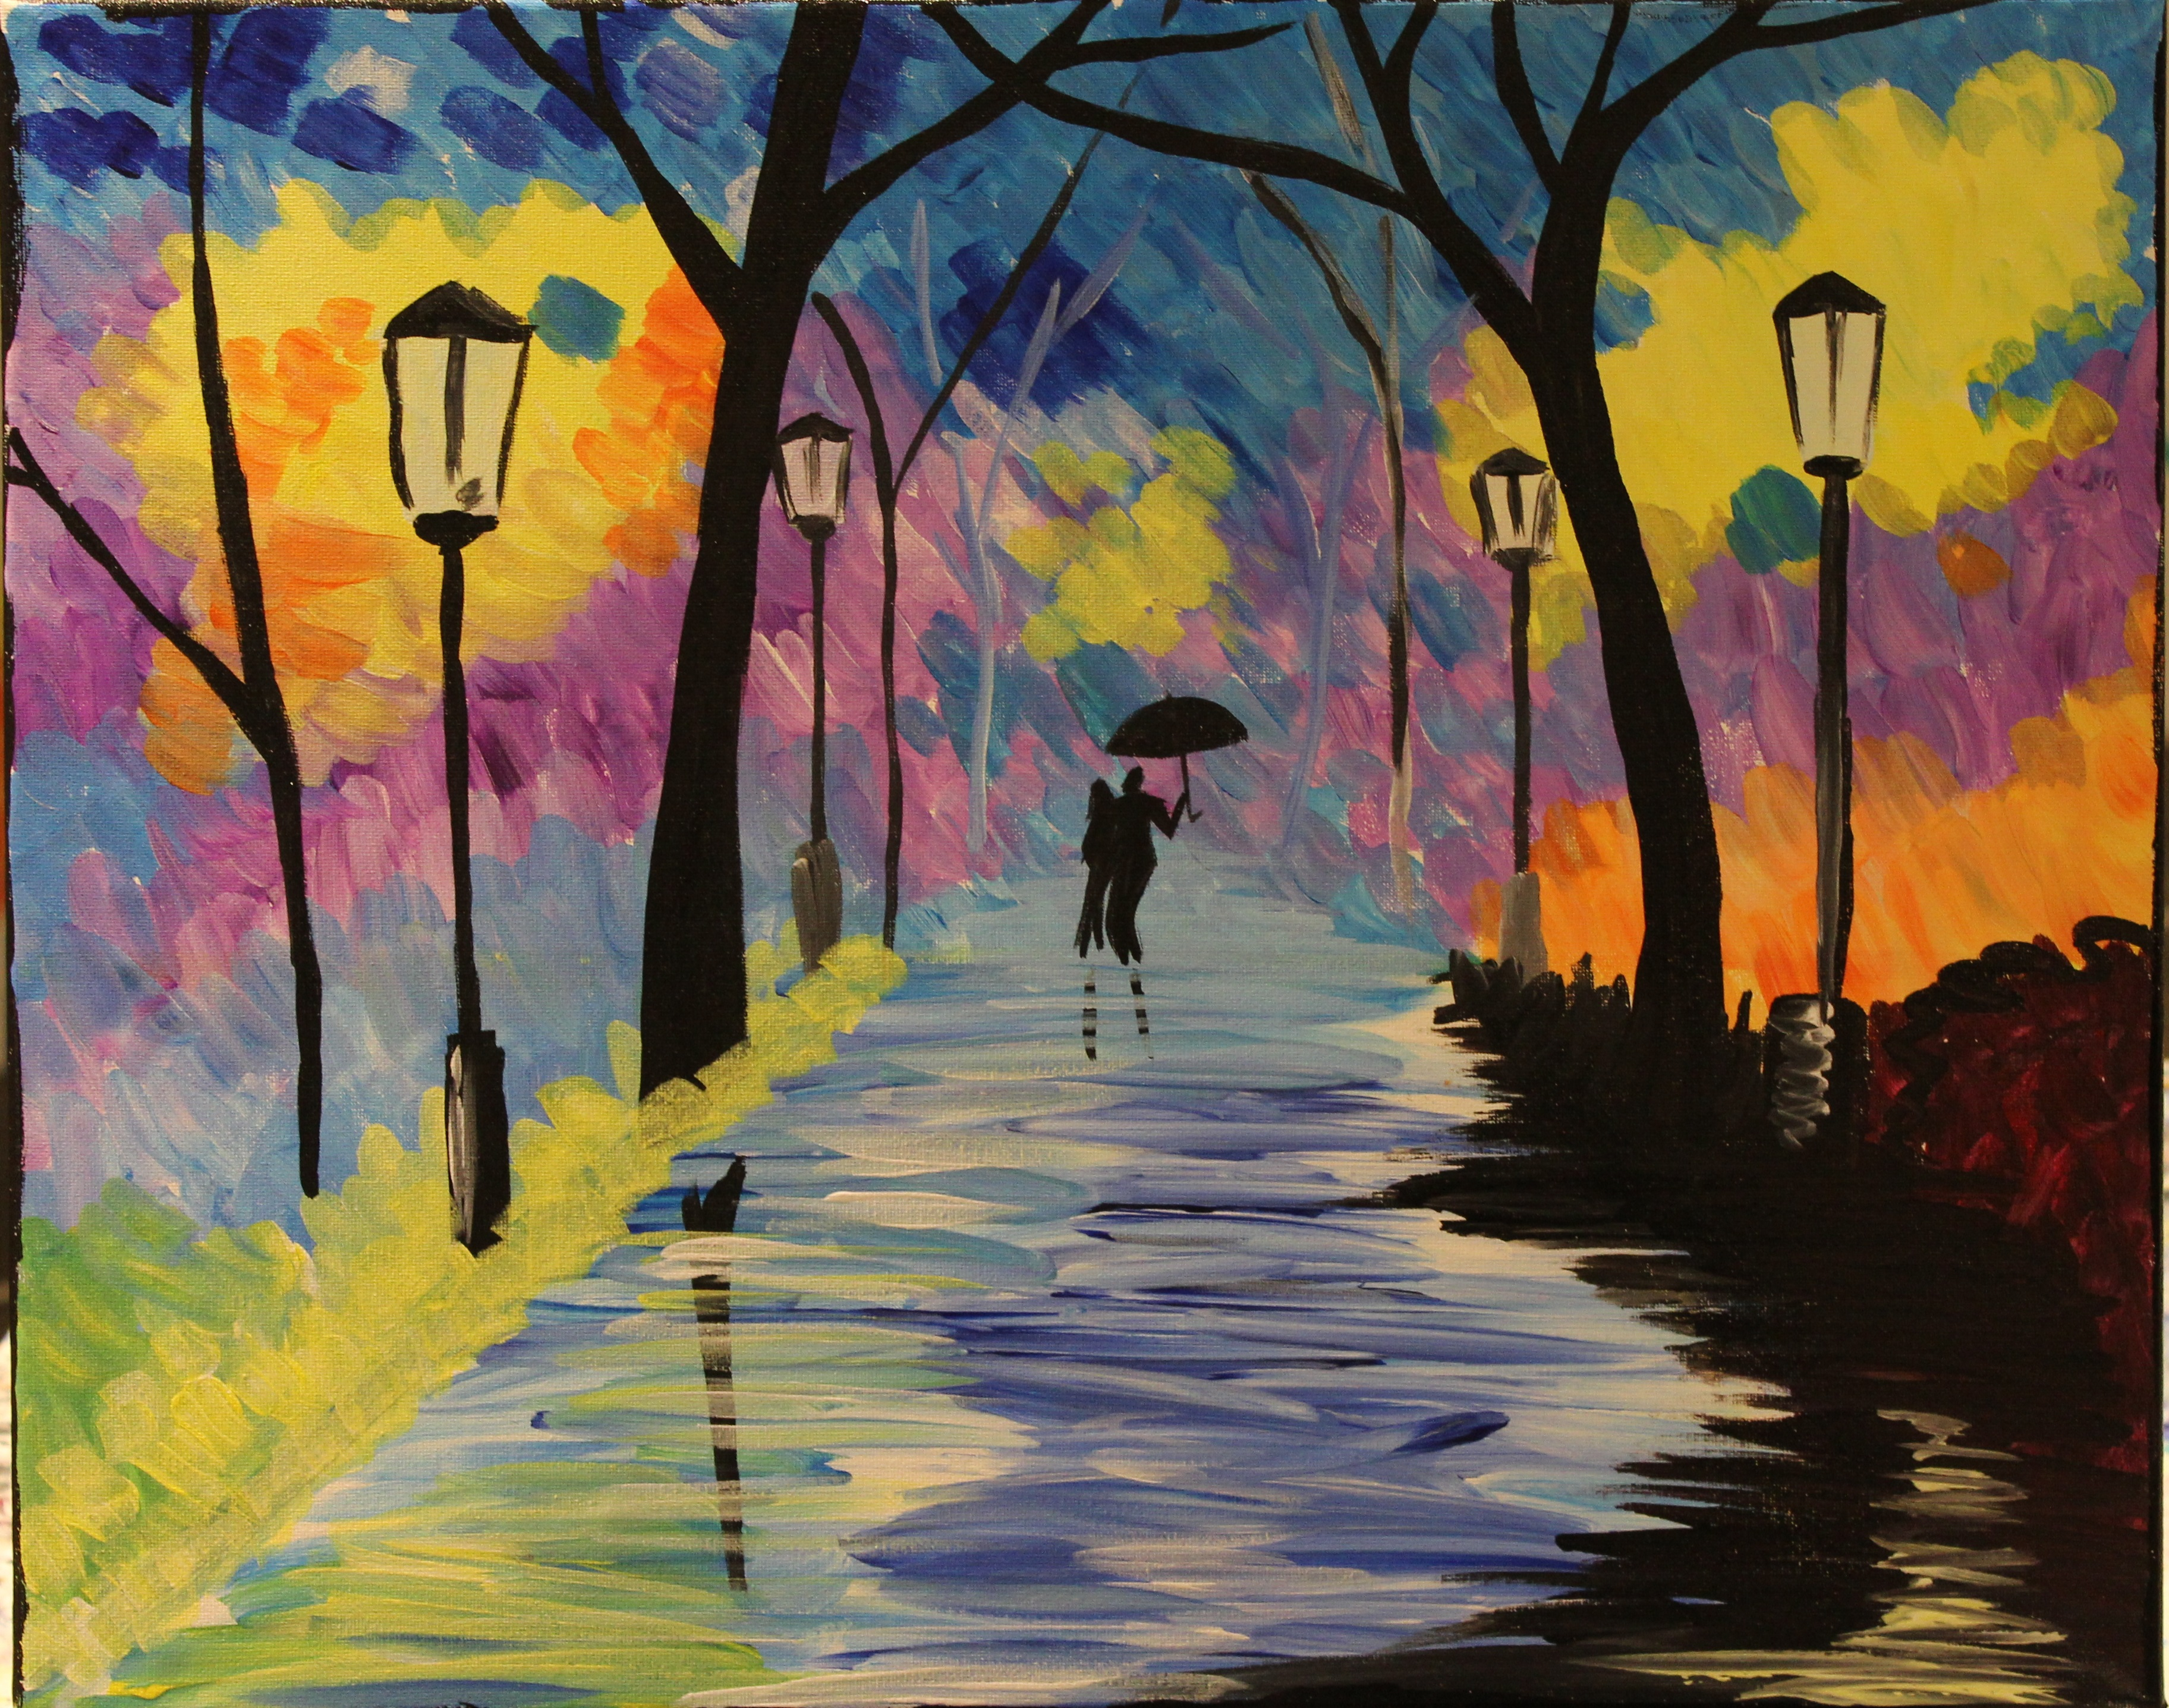 Paint And Sip Studio Painting Events For Any Skill Level